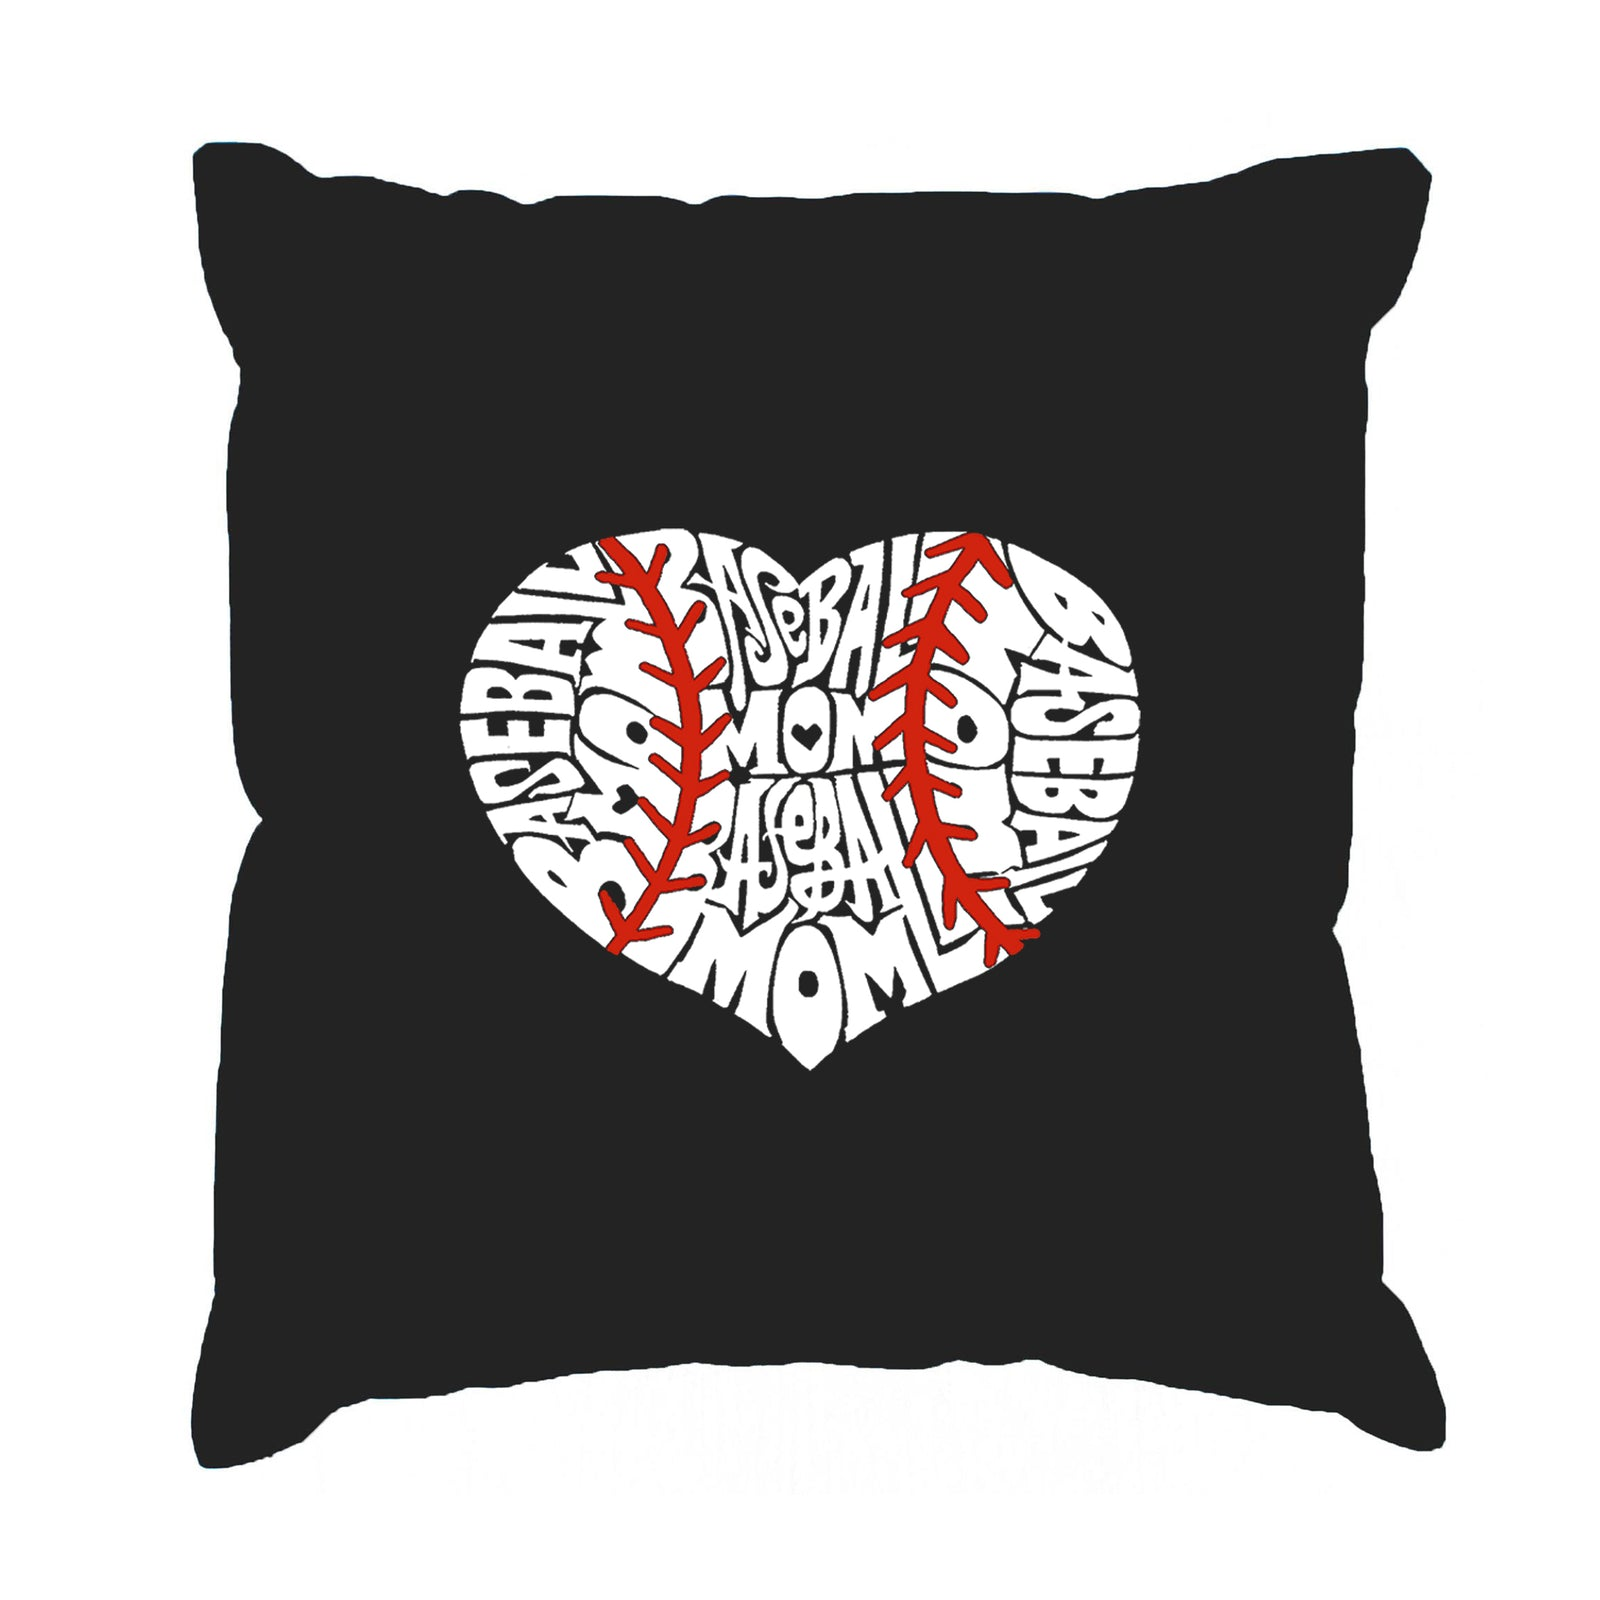 Throw Pillow Cover - Word Art - Baseball Mom